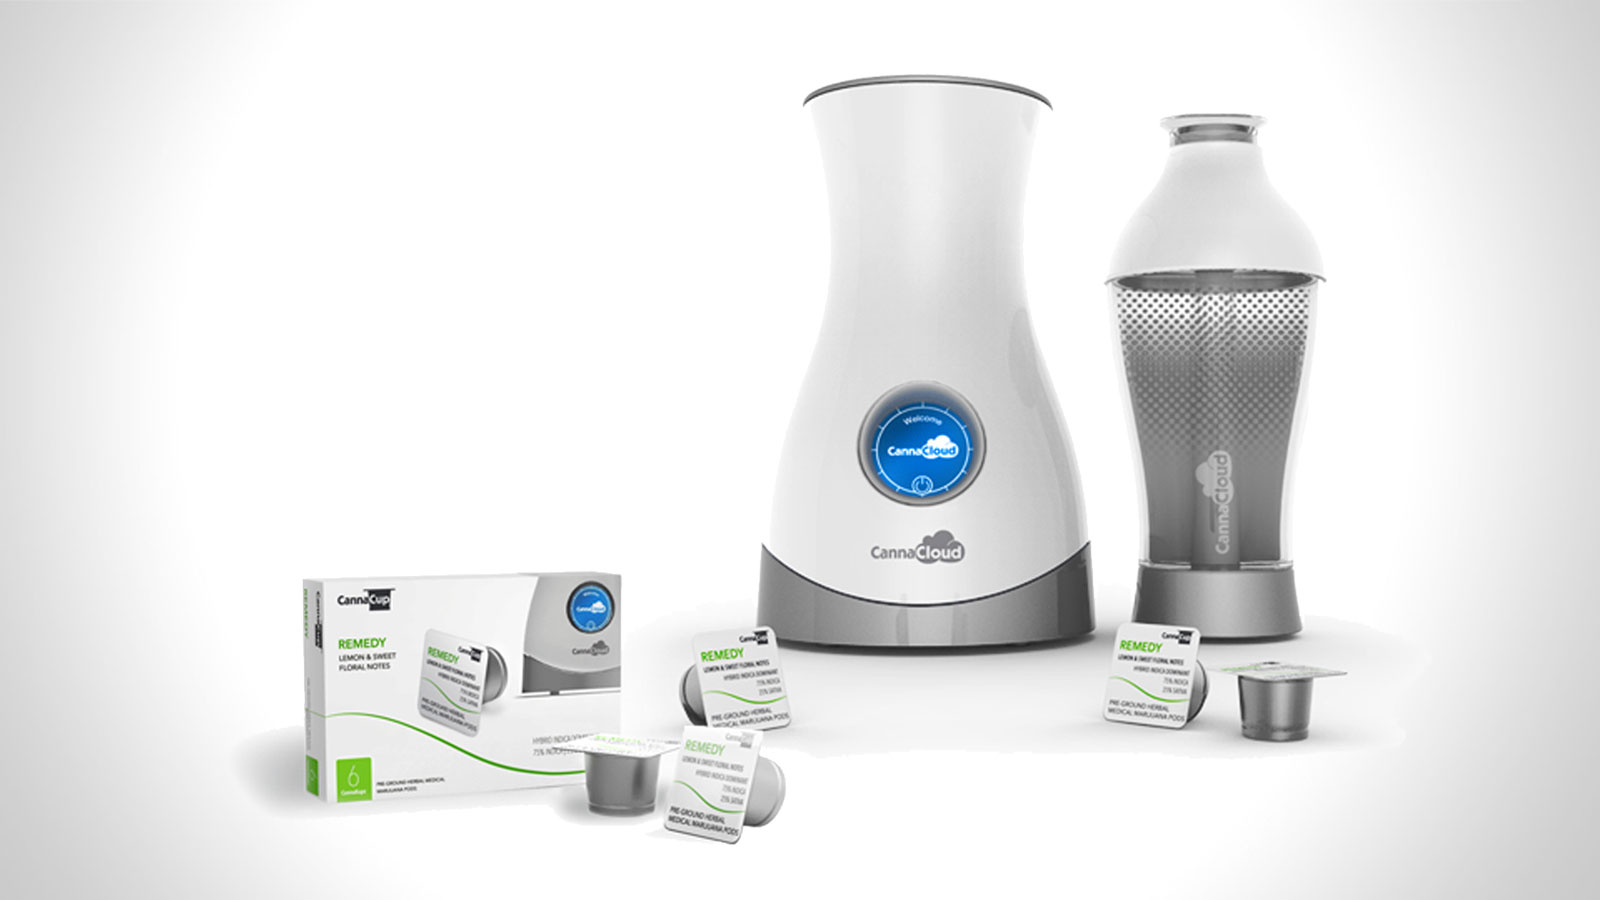 cannacloud the keurig for pot